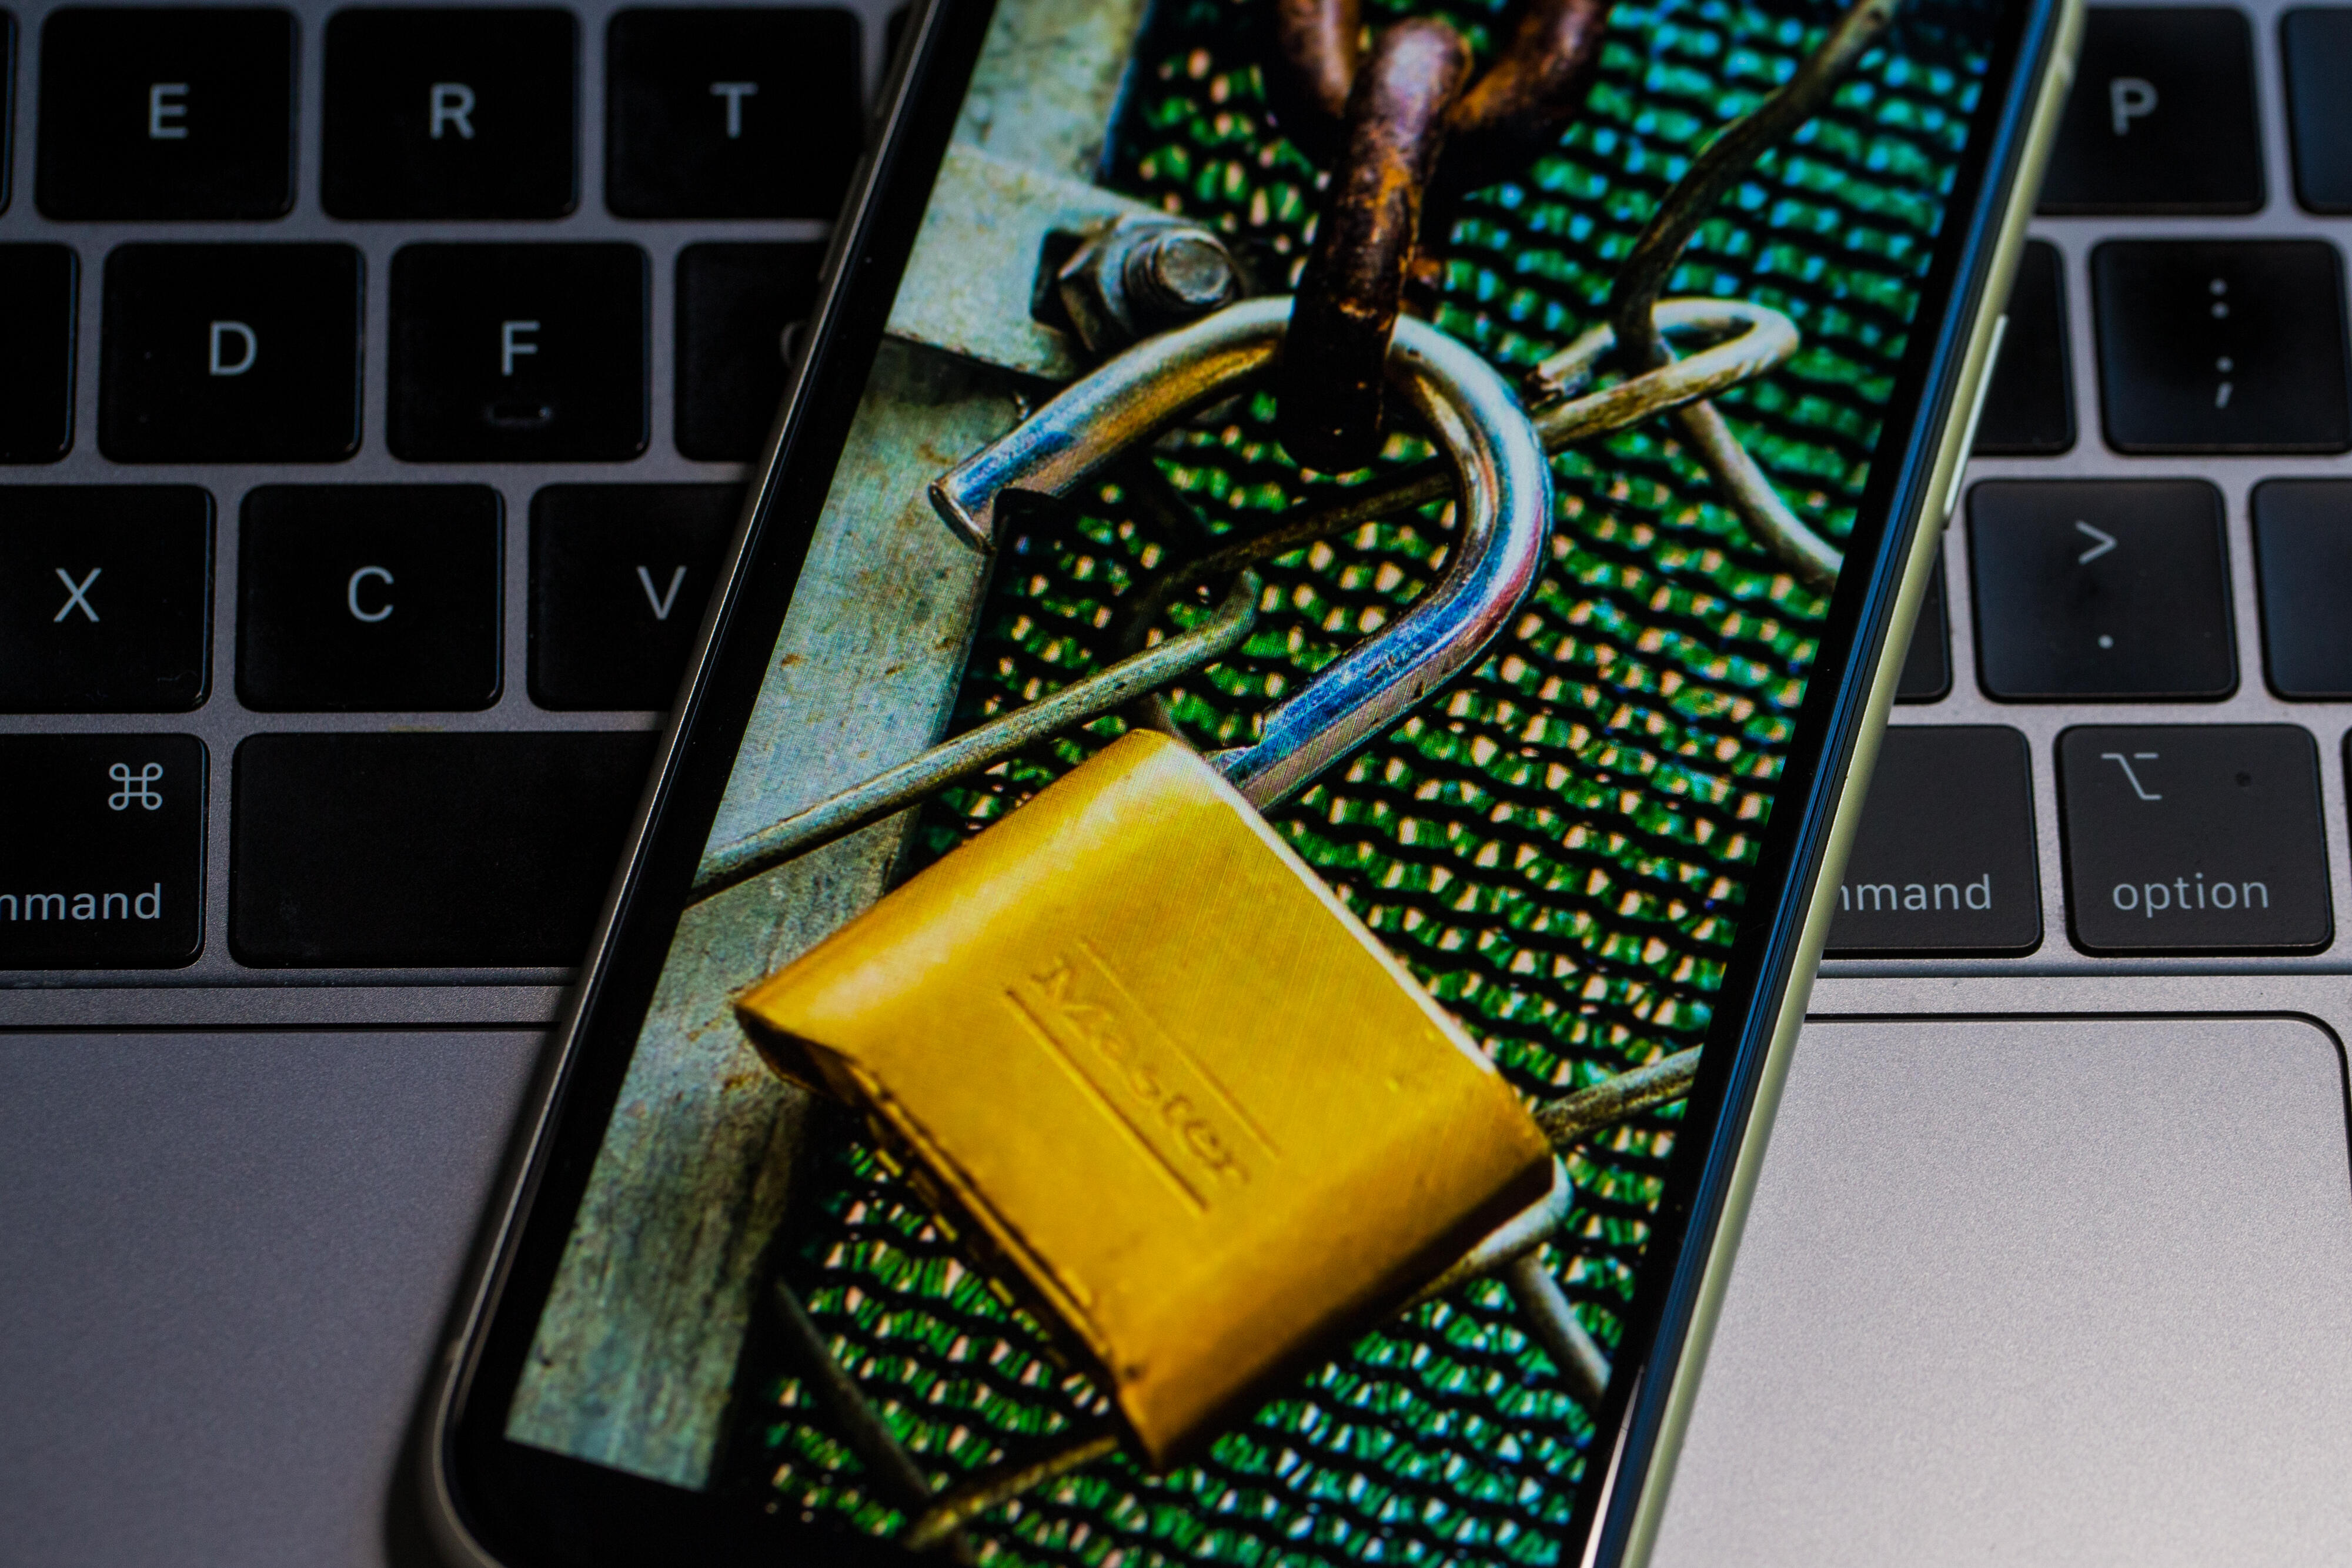 Image of a padlock and a chain-link fence on a smartphone screen.